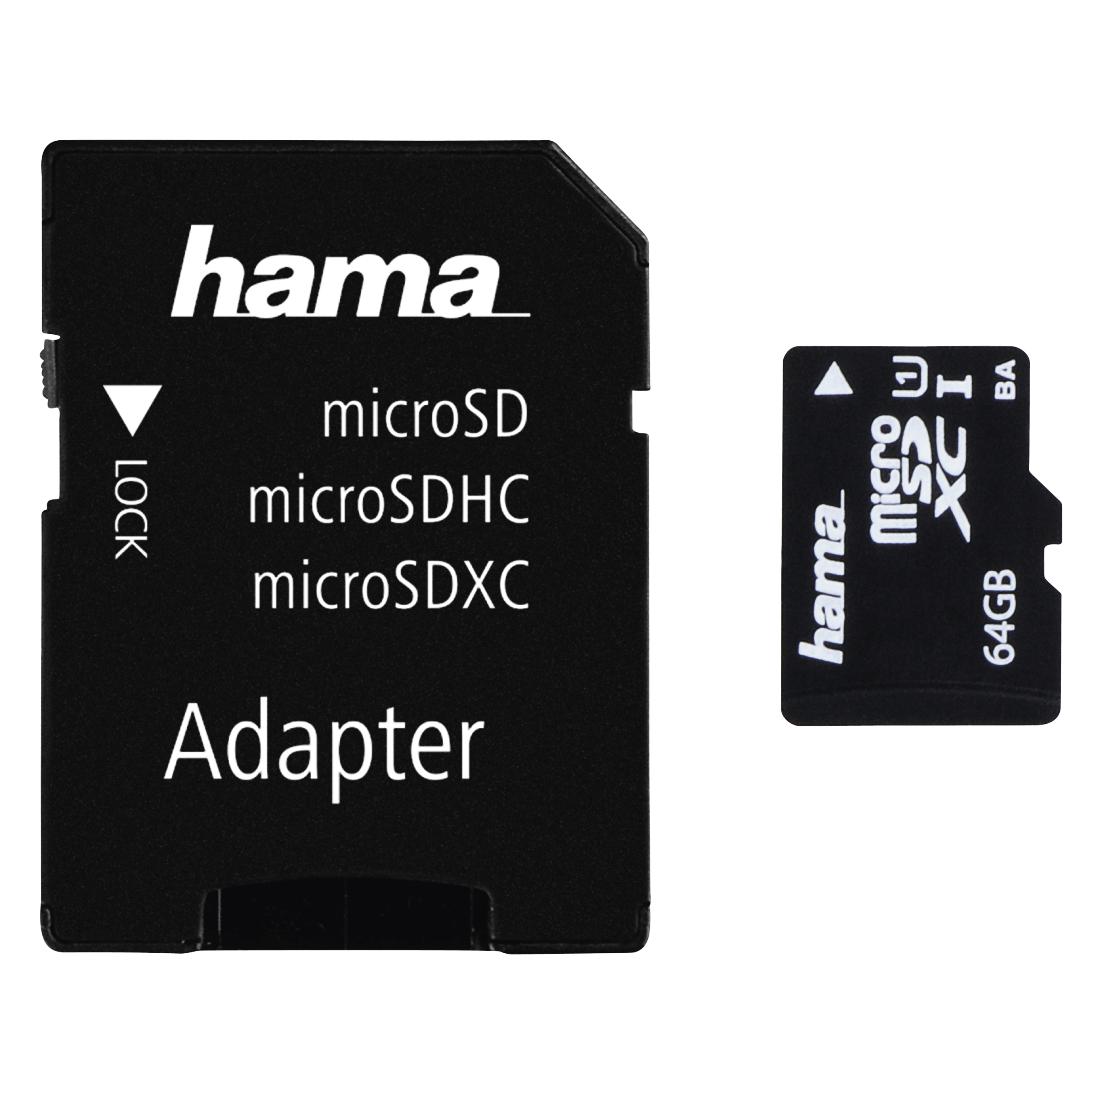 abx2 High-Res Image 2 - Hama, USB 2.0 Card Reader + Adapter Kit, microSD, black